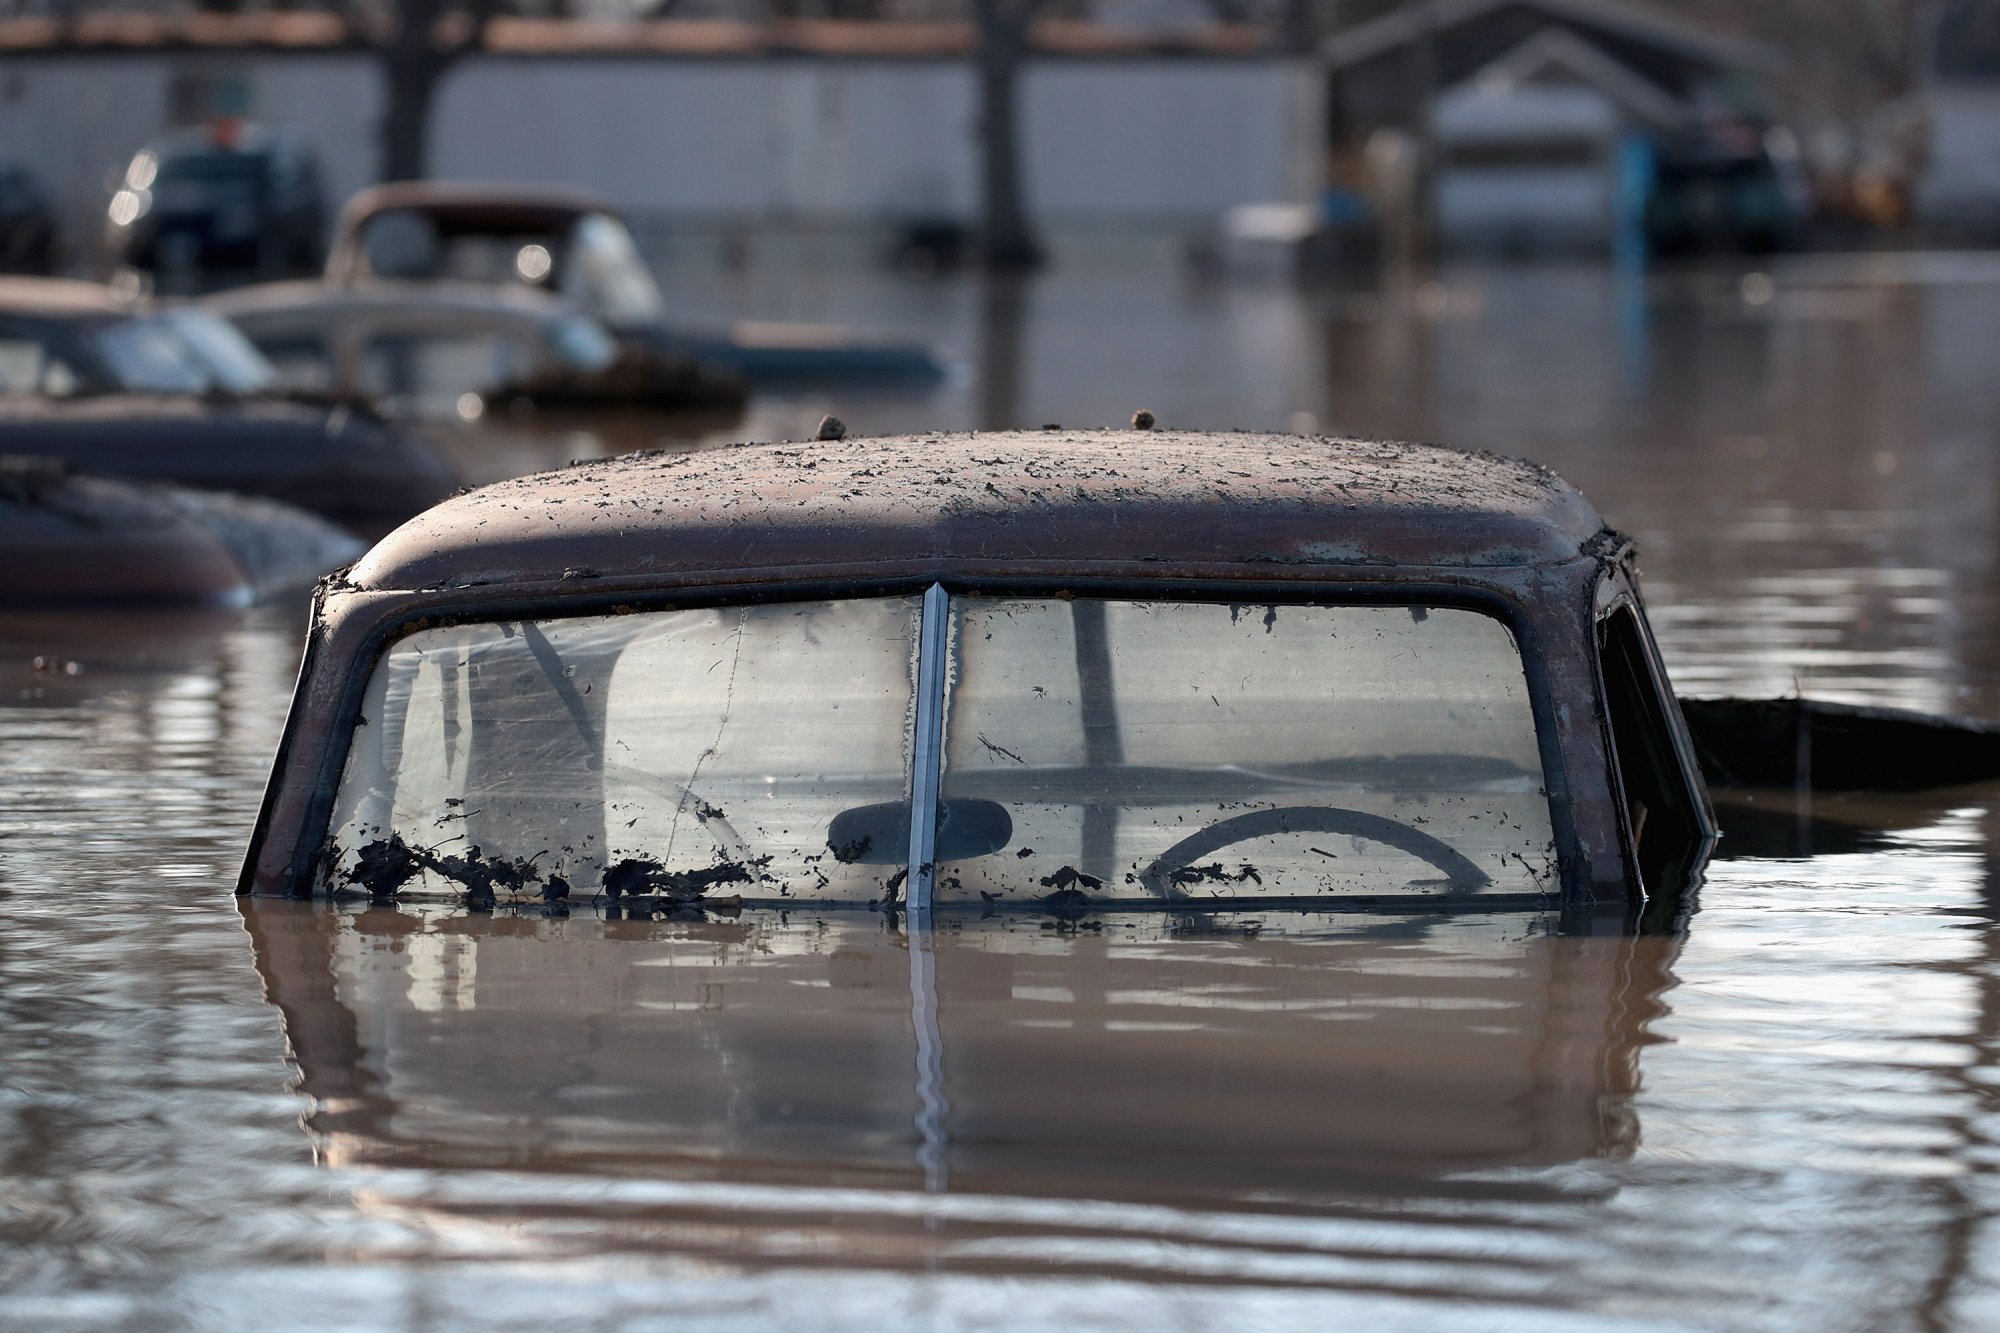 "HAMBURG, IOWA - MARCH 20:  A vintage car sits in flood water on March 20, 2019 in Hamburg, Iowa. Although flood water in the town has started to recede many homes and businesses remain surrounded by water. Several Midwest states are battling some of the worst flooding they have experienced in decades as rain and snow melt from the recent ""bomb cyclone"" has inundated rivers and streams. At least three deaths have been linked to the flooding. (Photo by Scott Olson/Getty Images)"